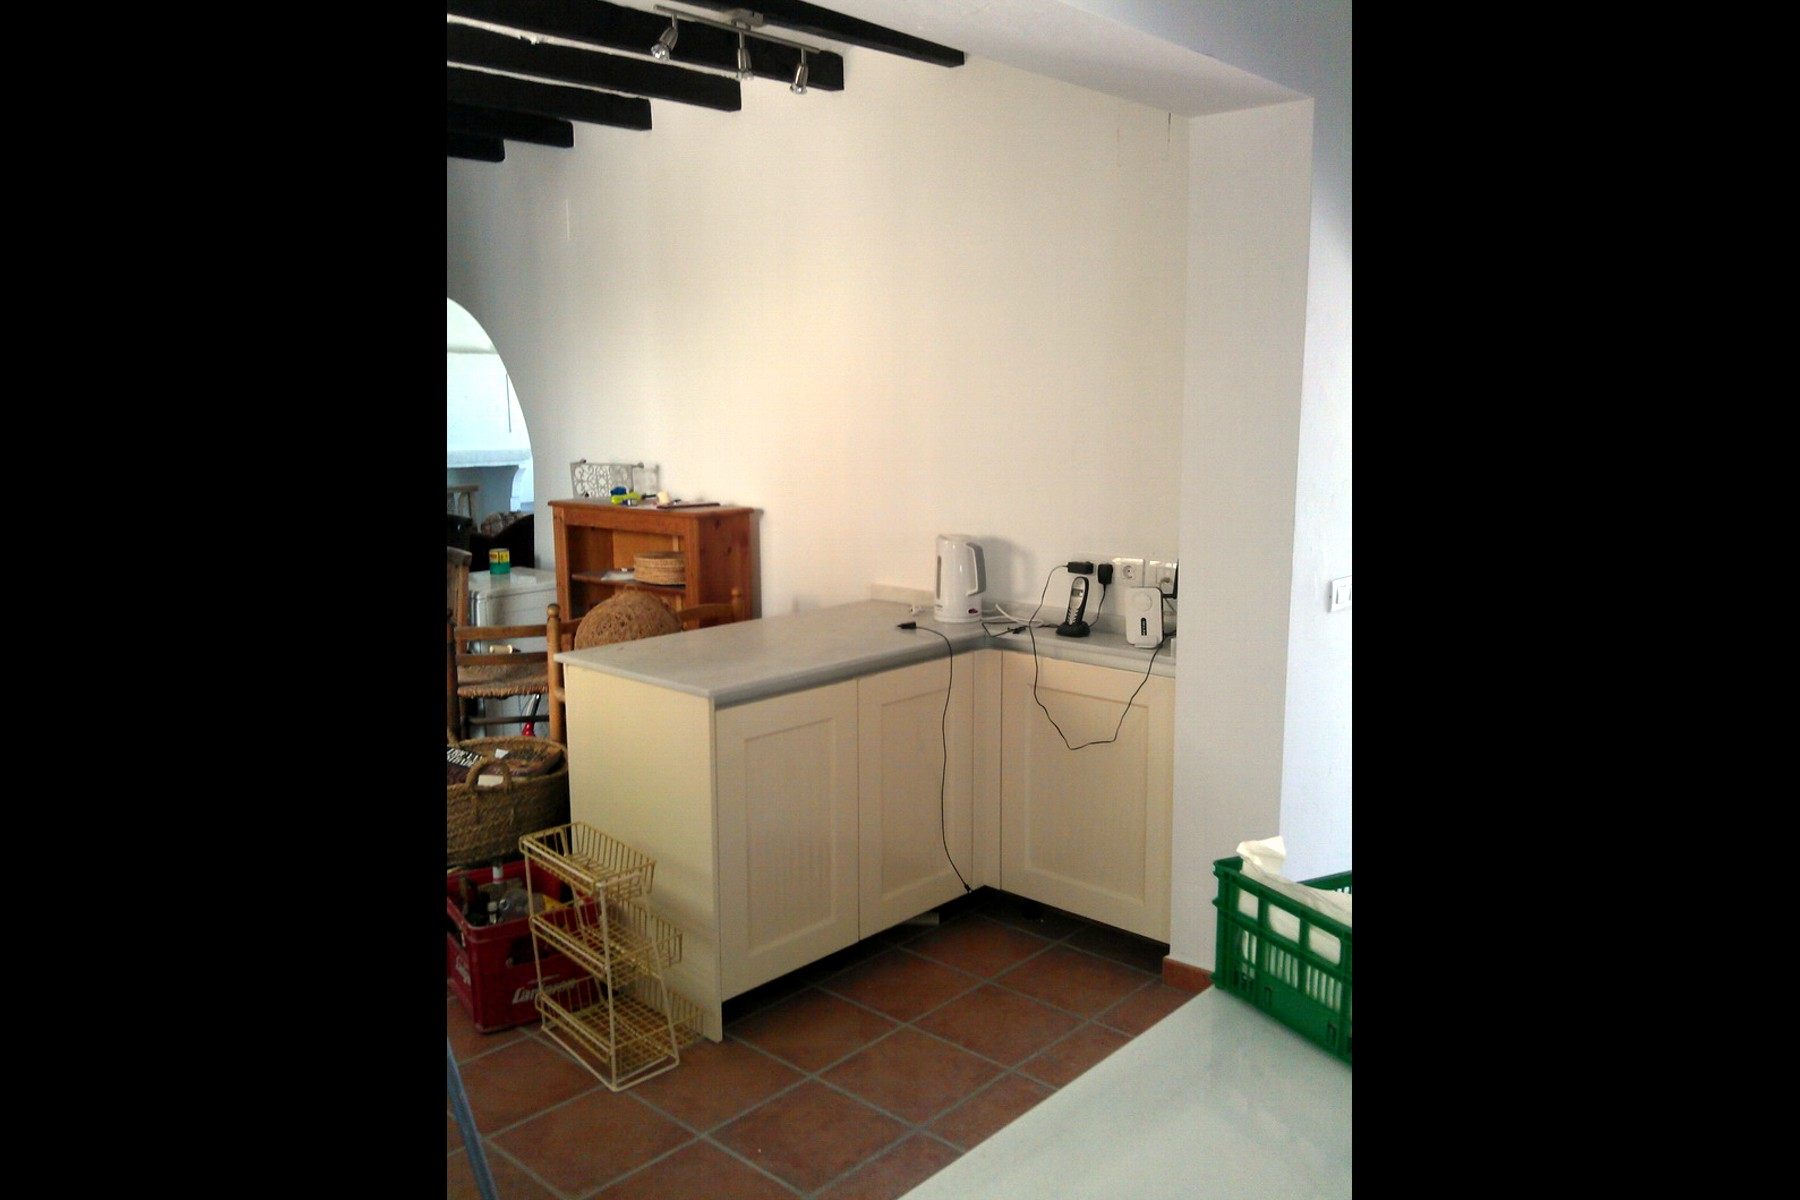 Imaginarq-422-Vivienda-unifamiliar-Altea-Alicante-14A